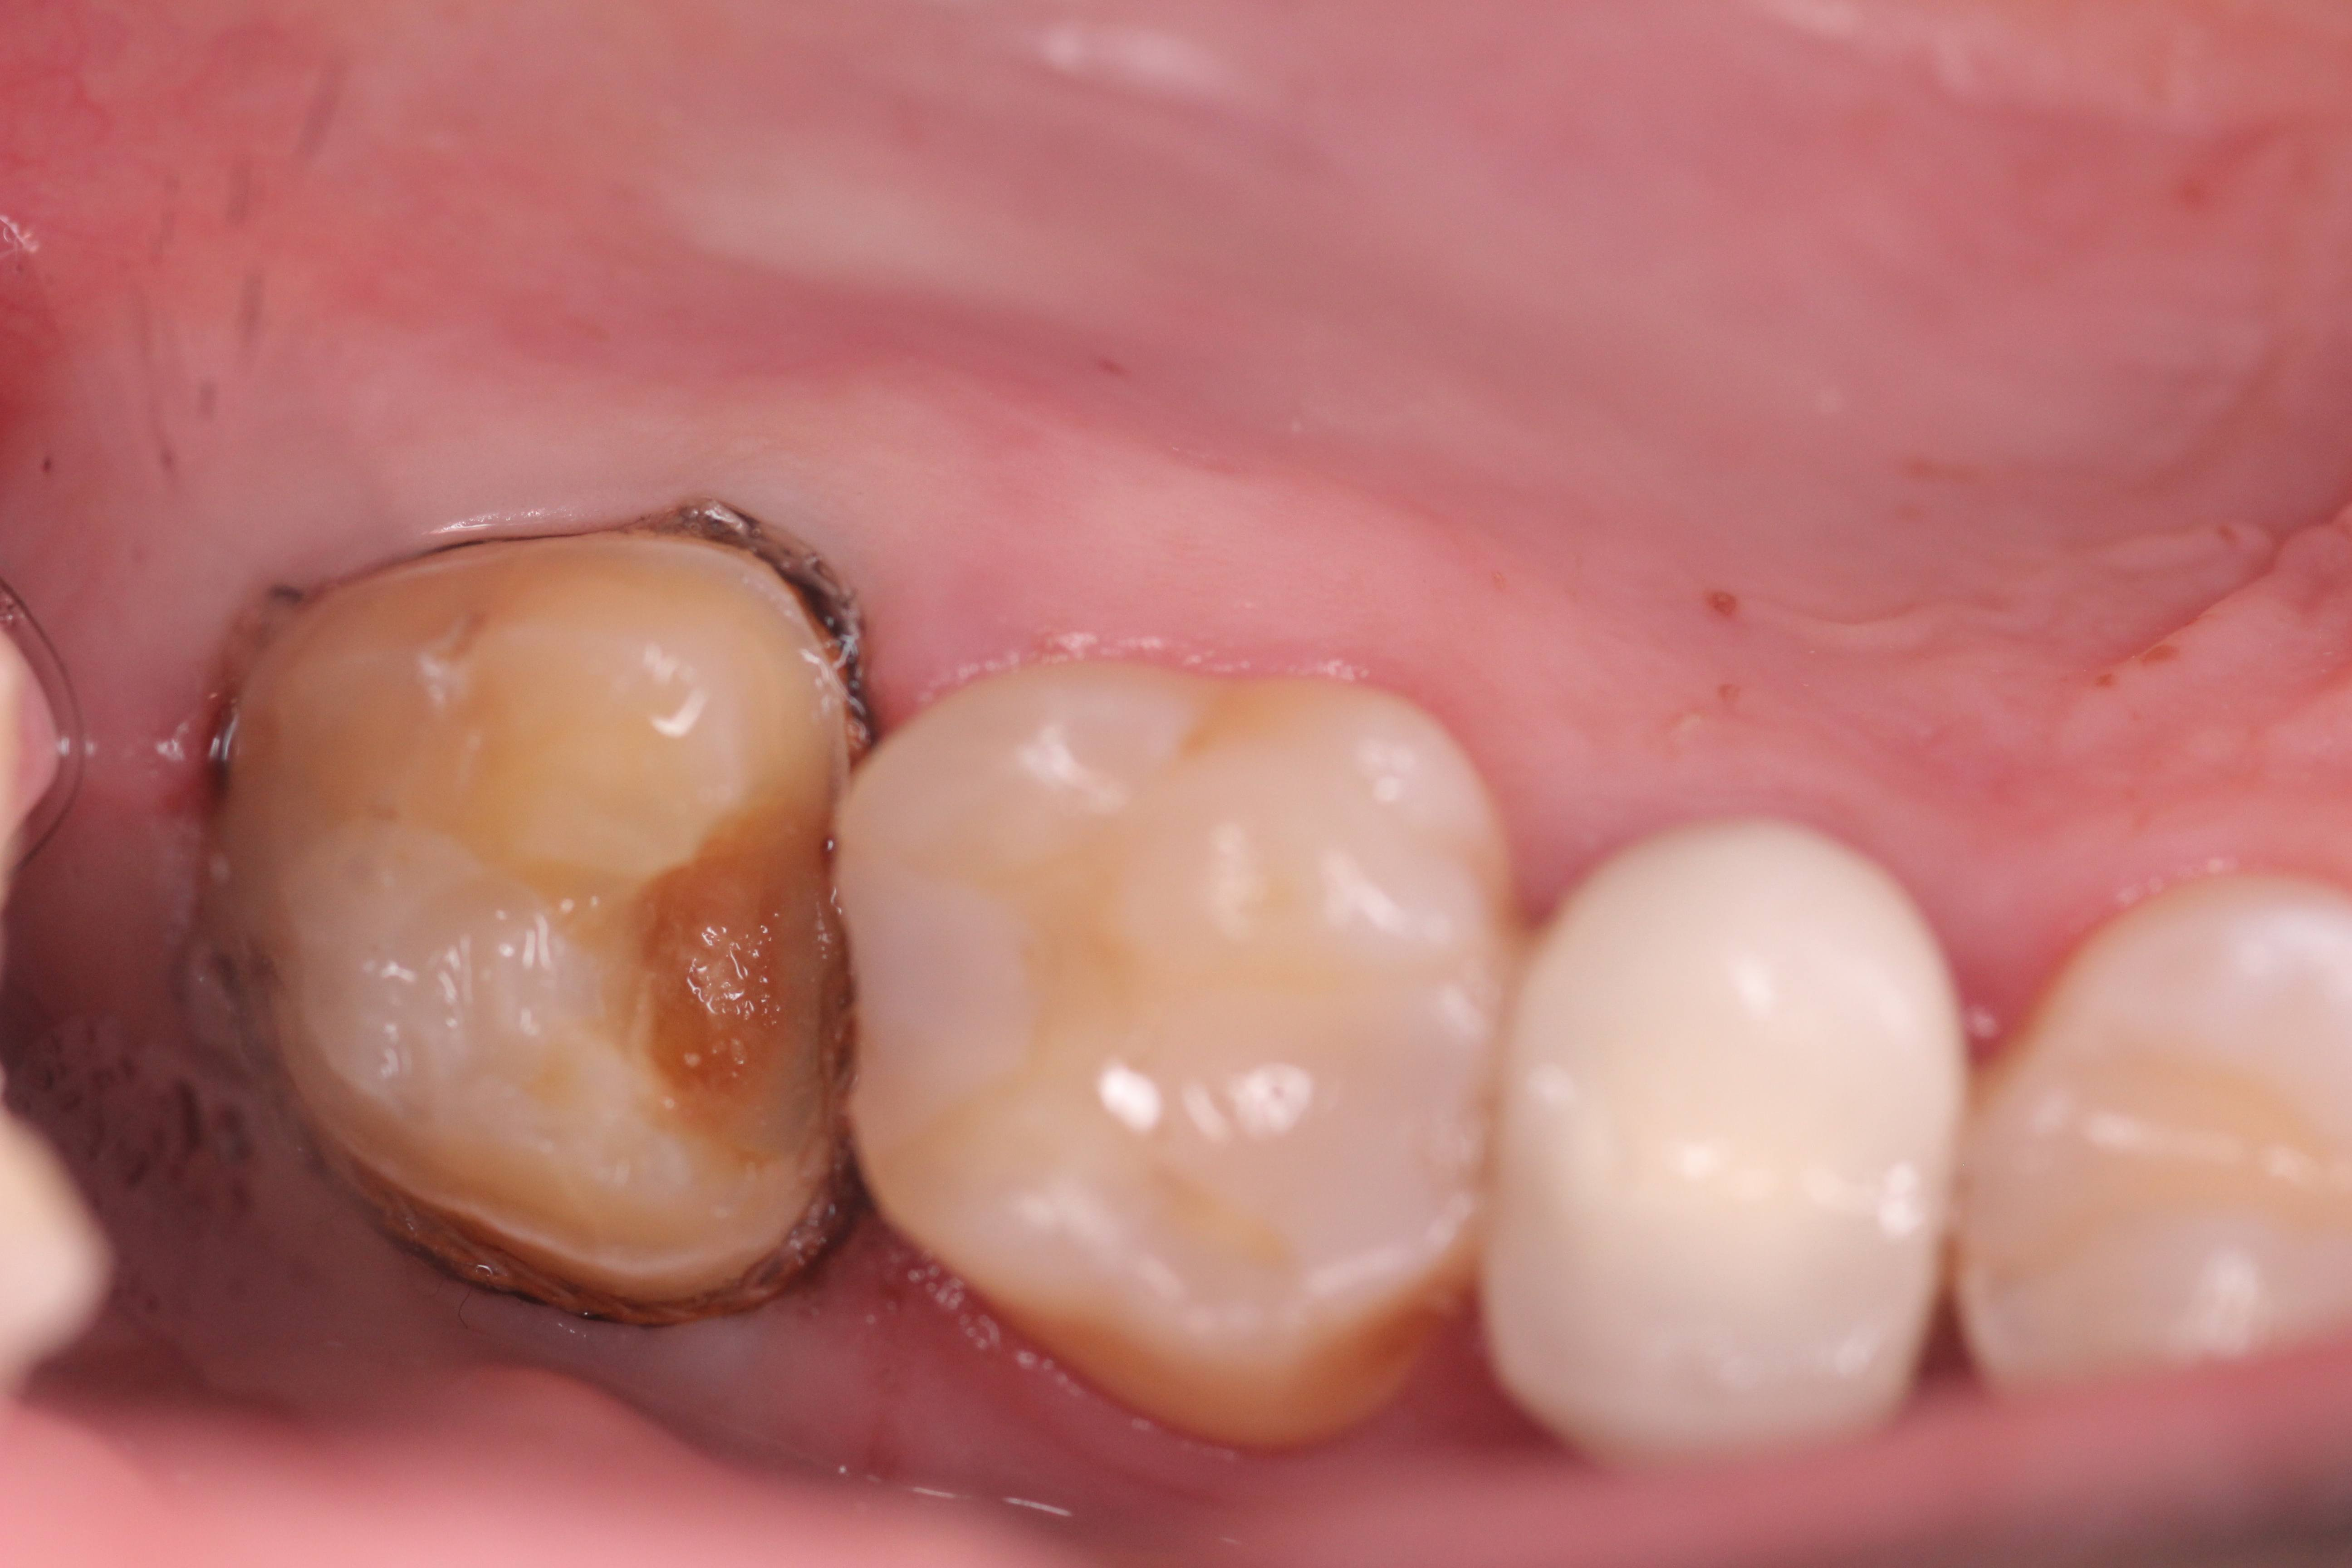 How I Treat Deep Cavities To Prevent Root Canal Infection A Case